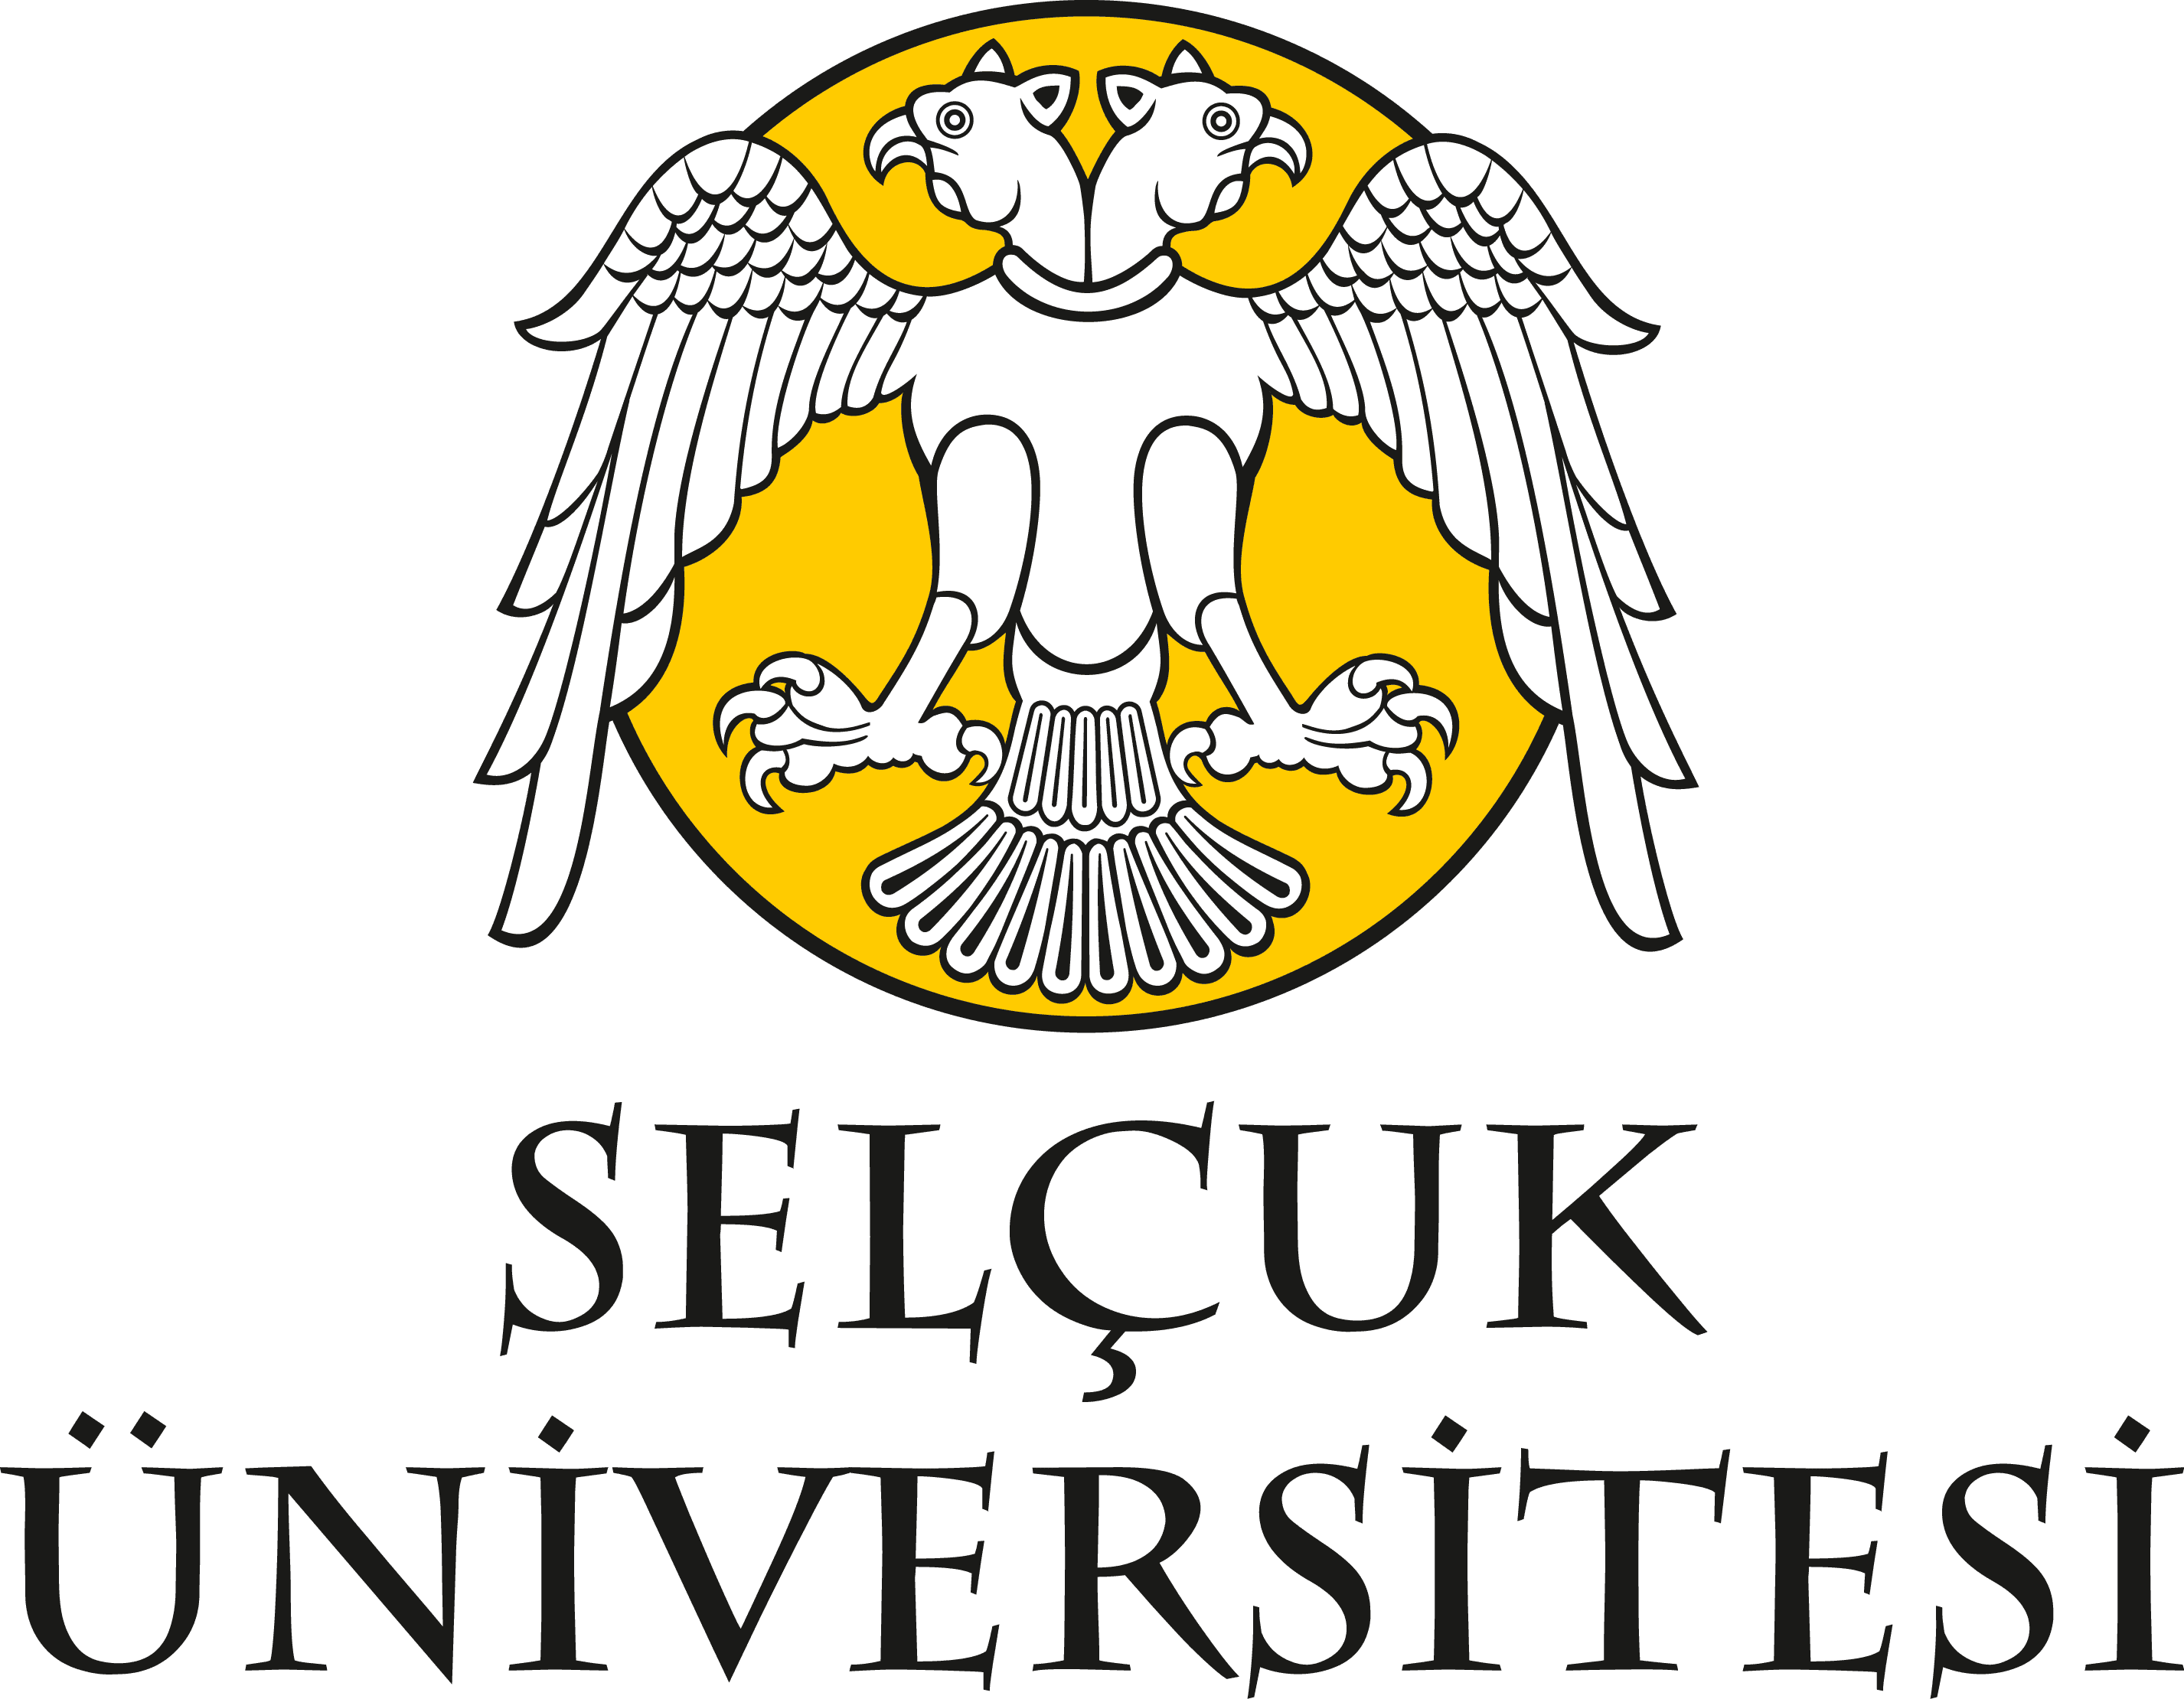 selcuk_universitesi_logo